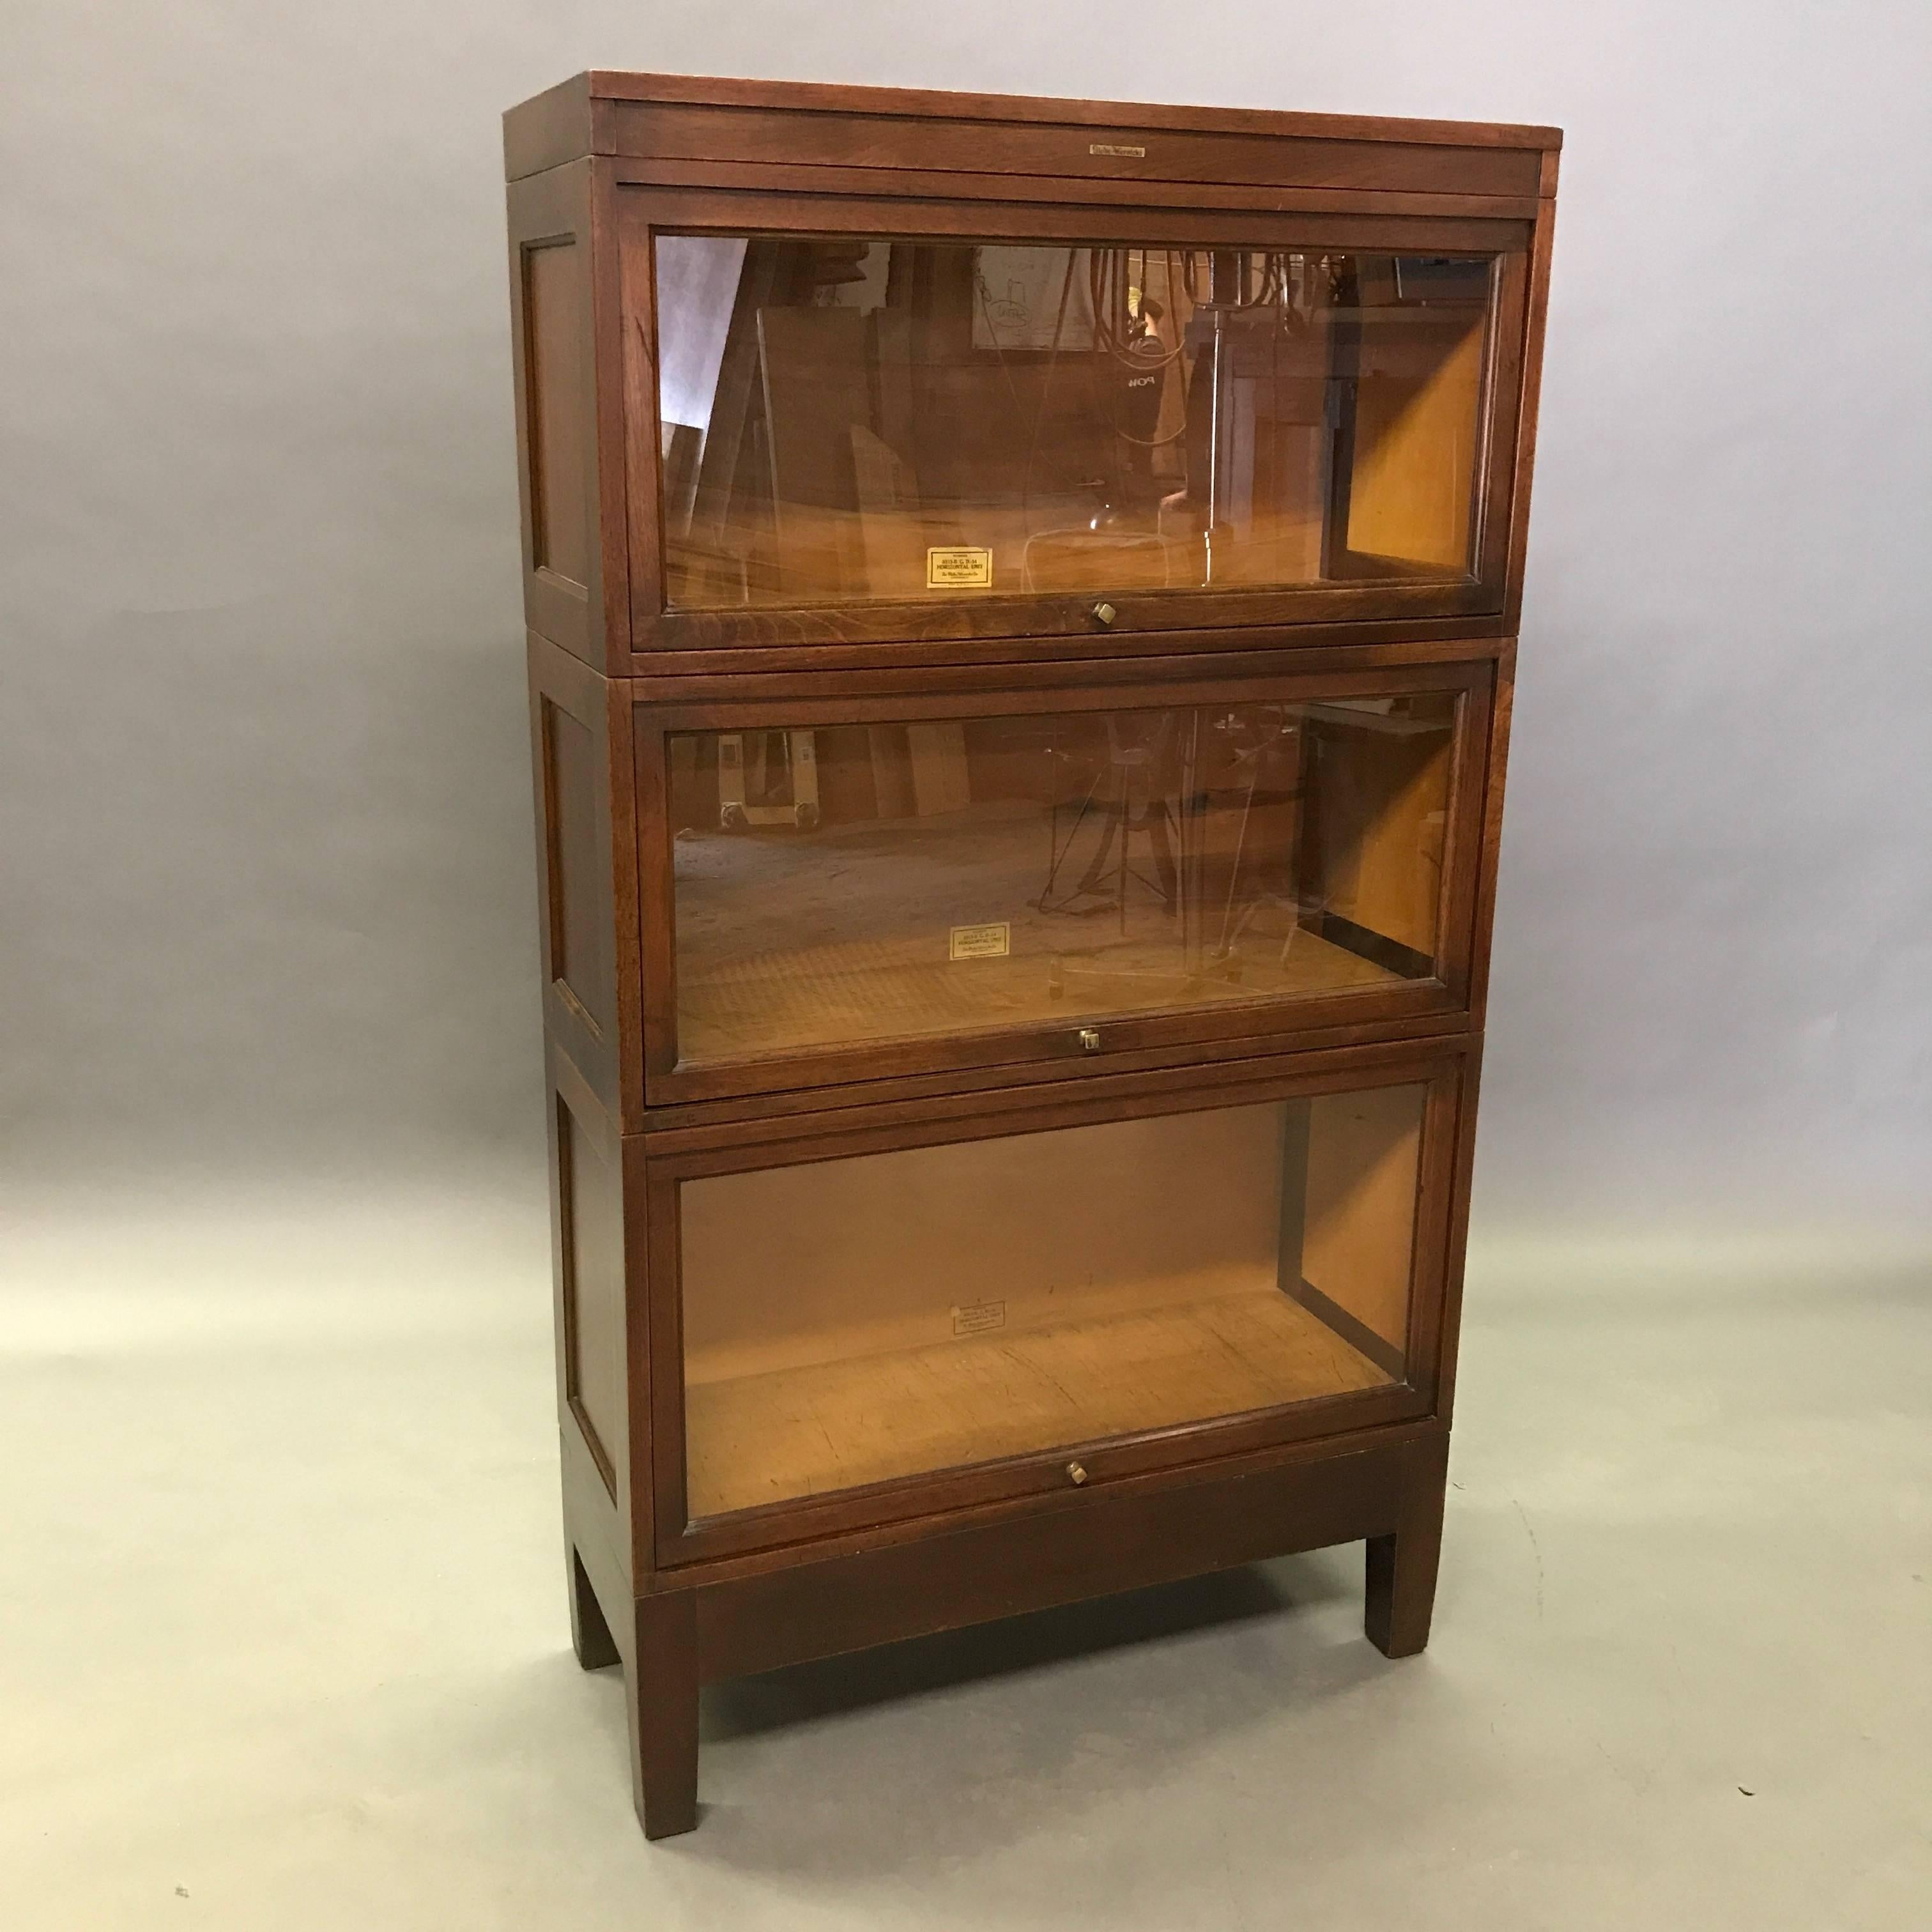 placed tall lacquer nronze handle white metal brown bookcase using vintage with antique glossy sliding bookcsae bookshef glass bookcases designs wood furniture wooden ceramic teak dark tiled narrow doors door on floor